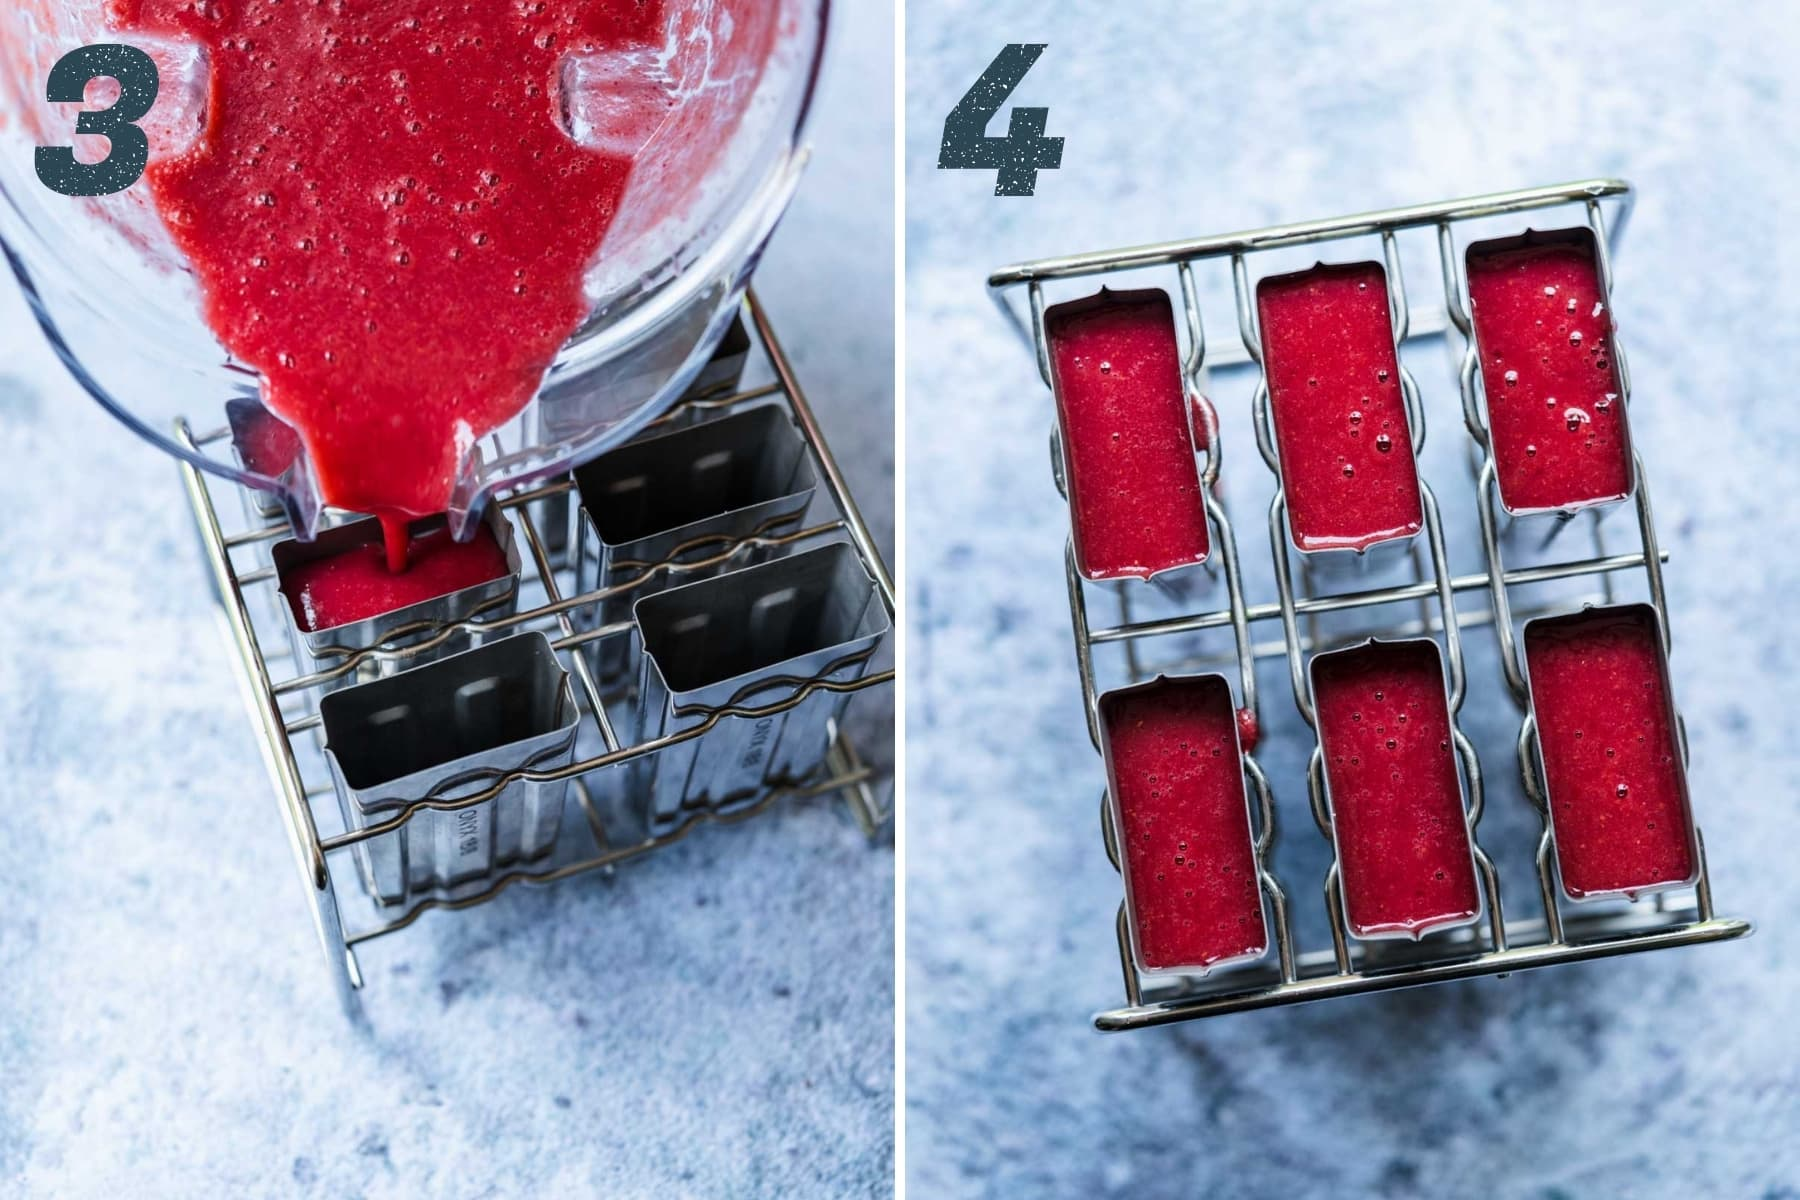 on the left: pouring watermelon berry mixture into popsicle molds. on the right: popsicles before freezing in molds.